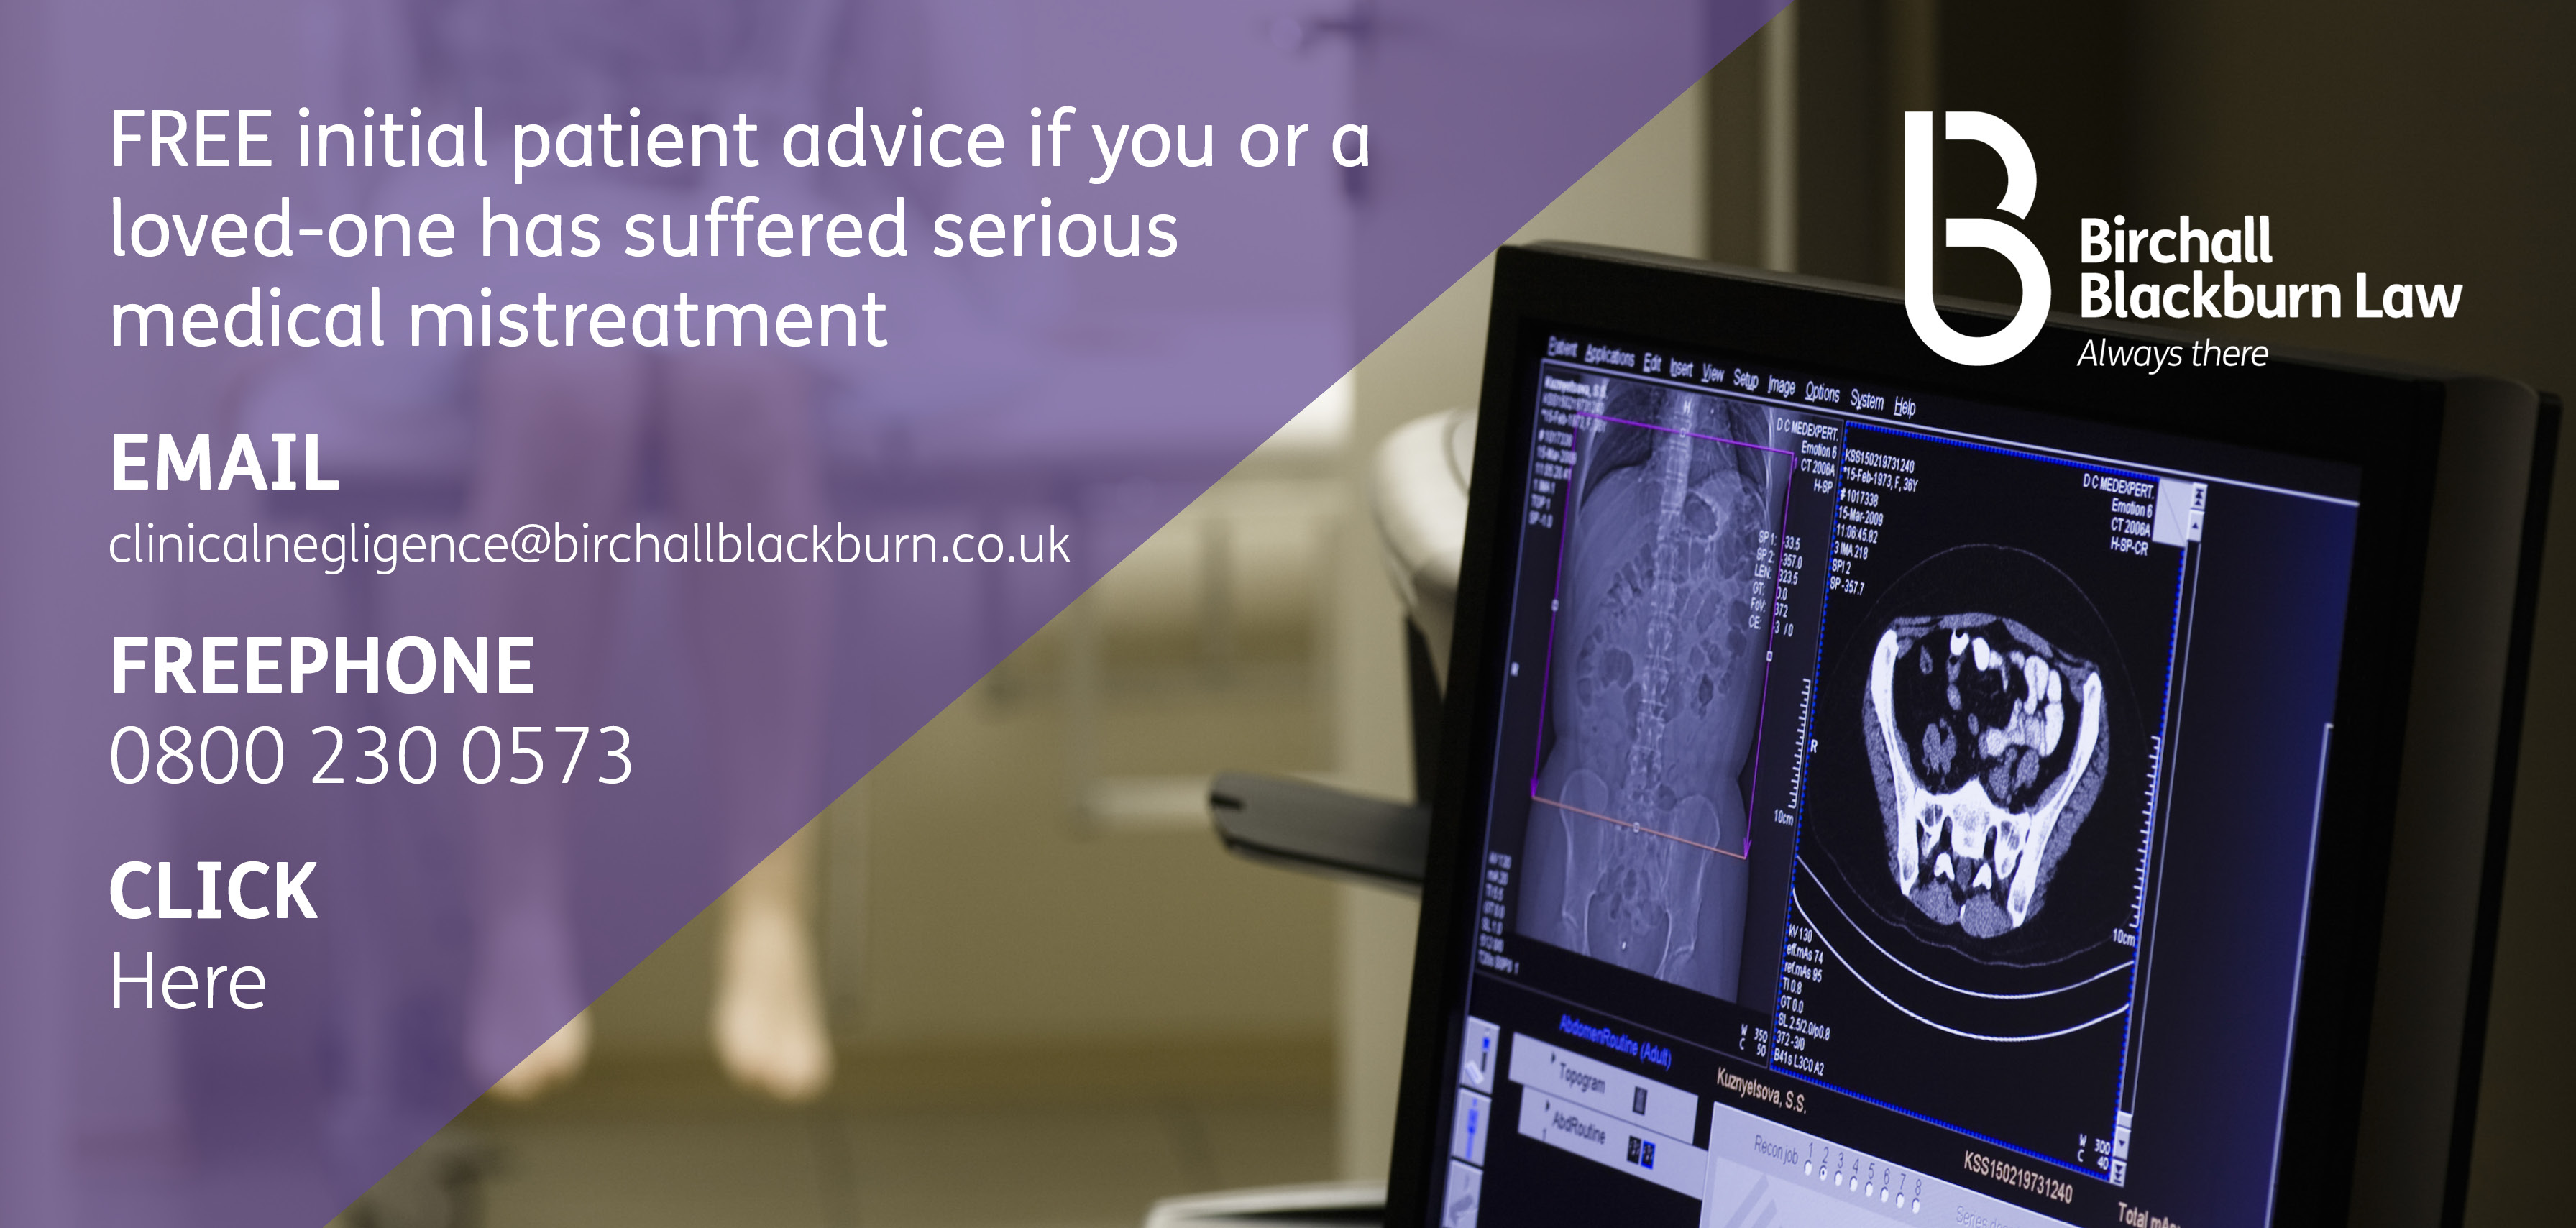 Free initial patient advice at Birchall Blackburn Law if you have suffered serious medical mistreatment